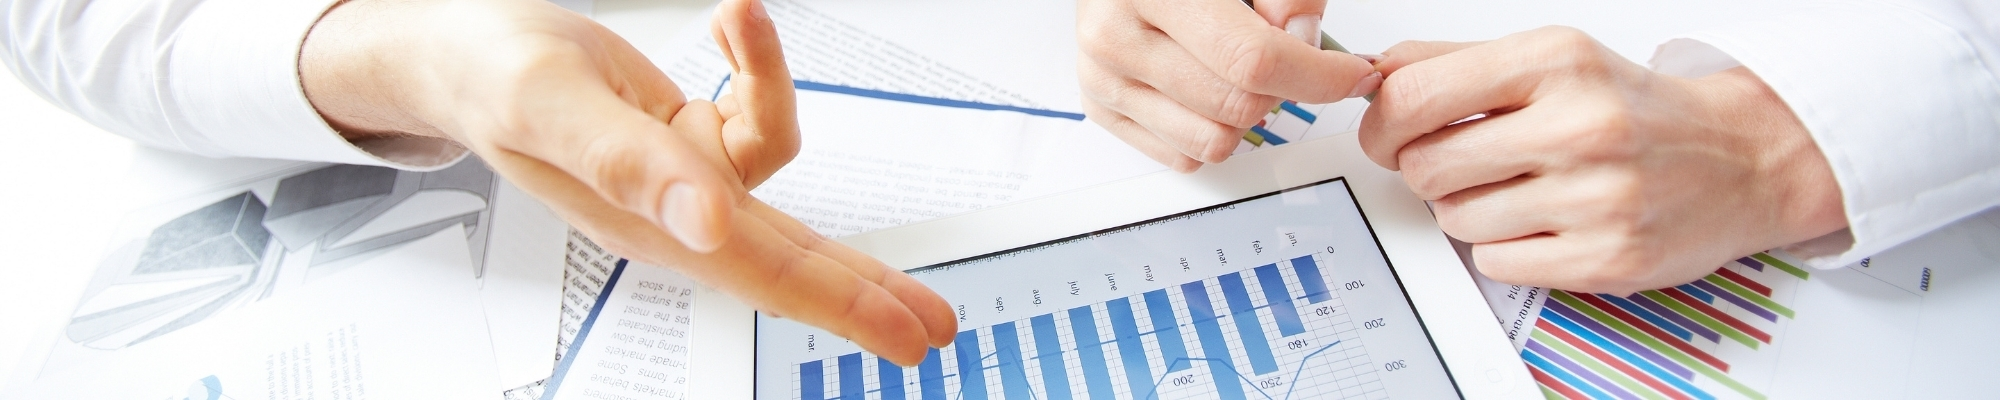 The importance of conducting business insurance risk reviews